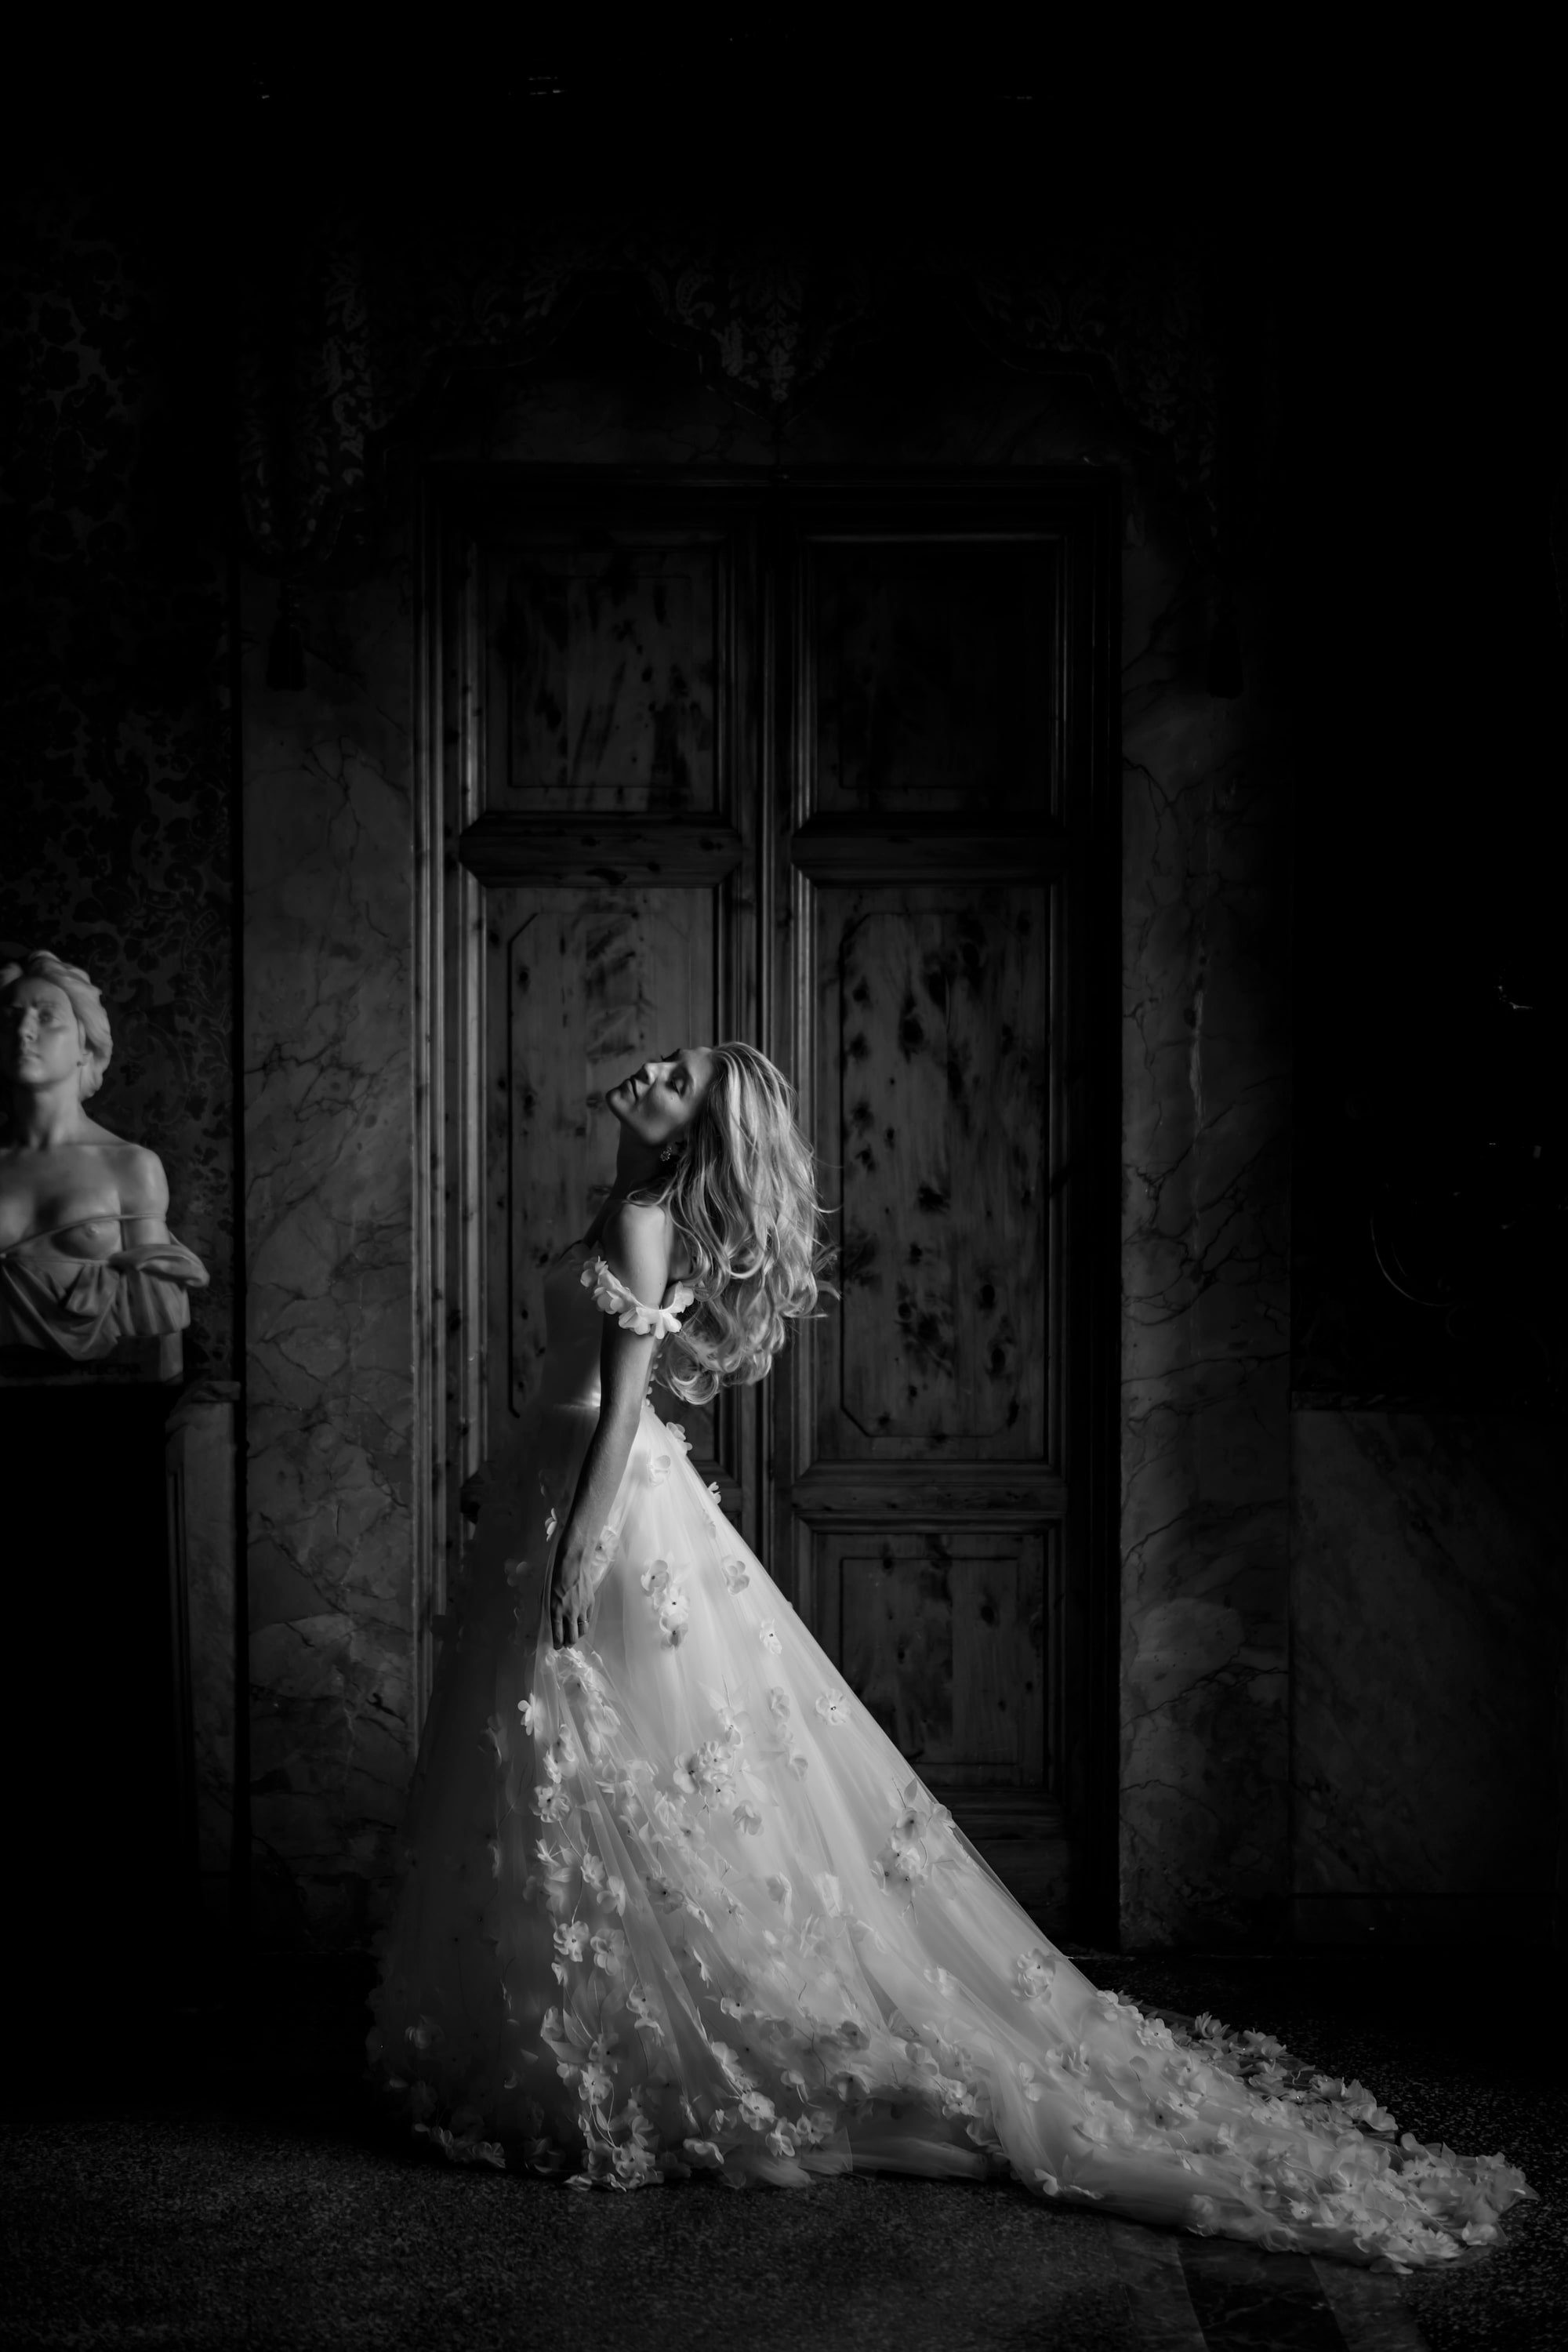 david bastianoni sony alpha 7M3 black and white side profile of a bride